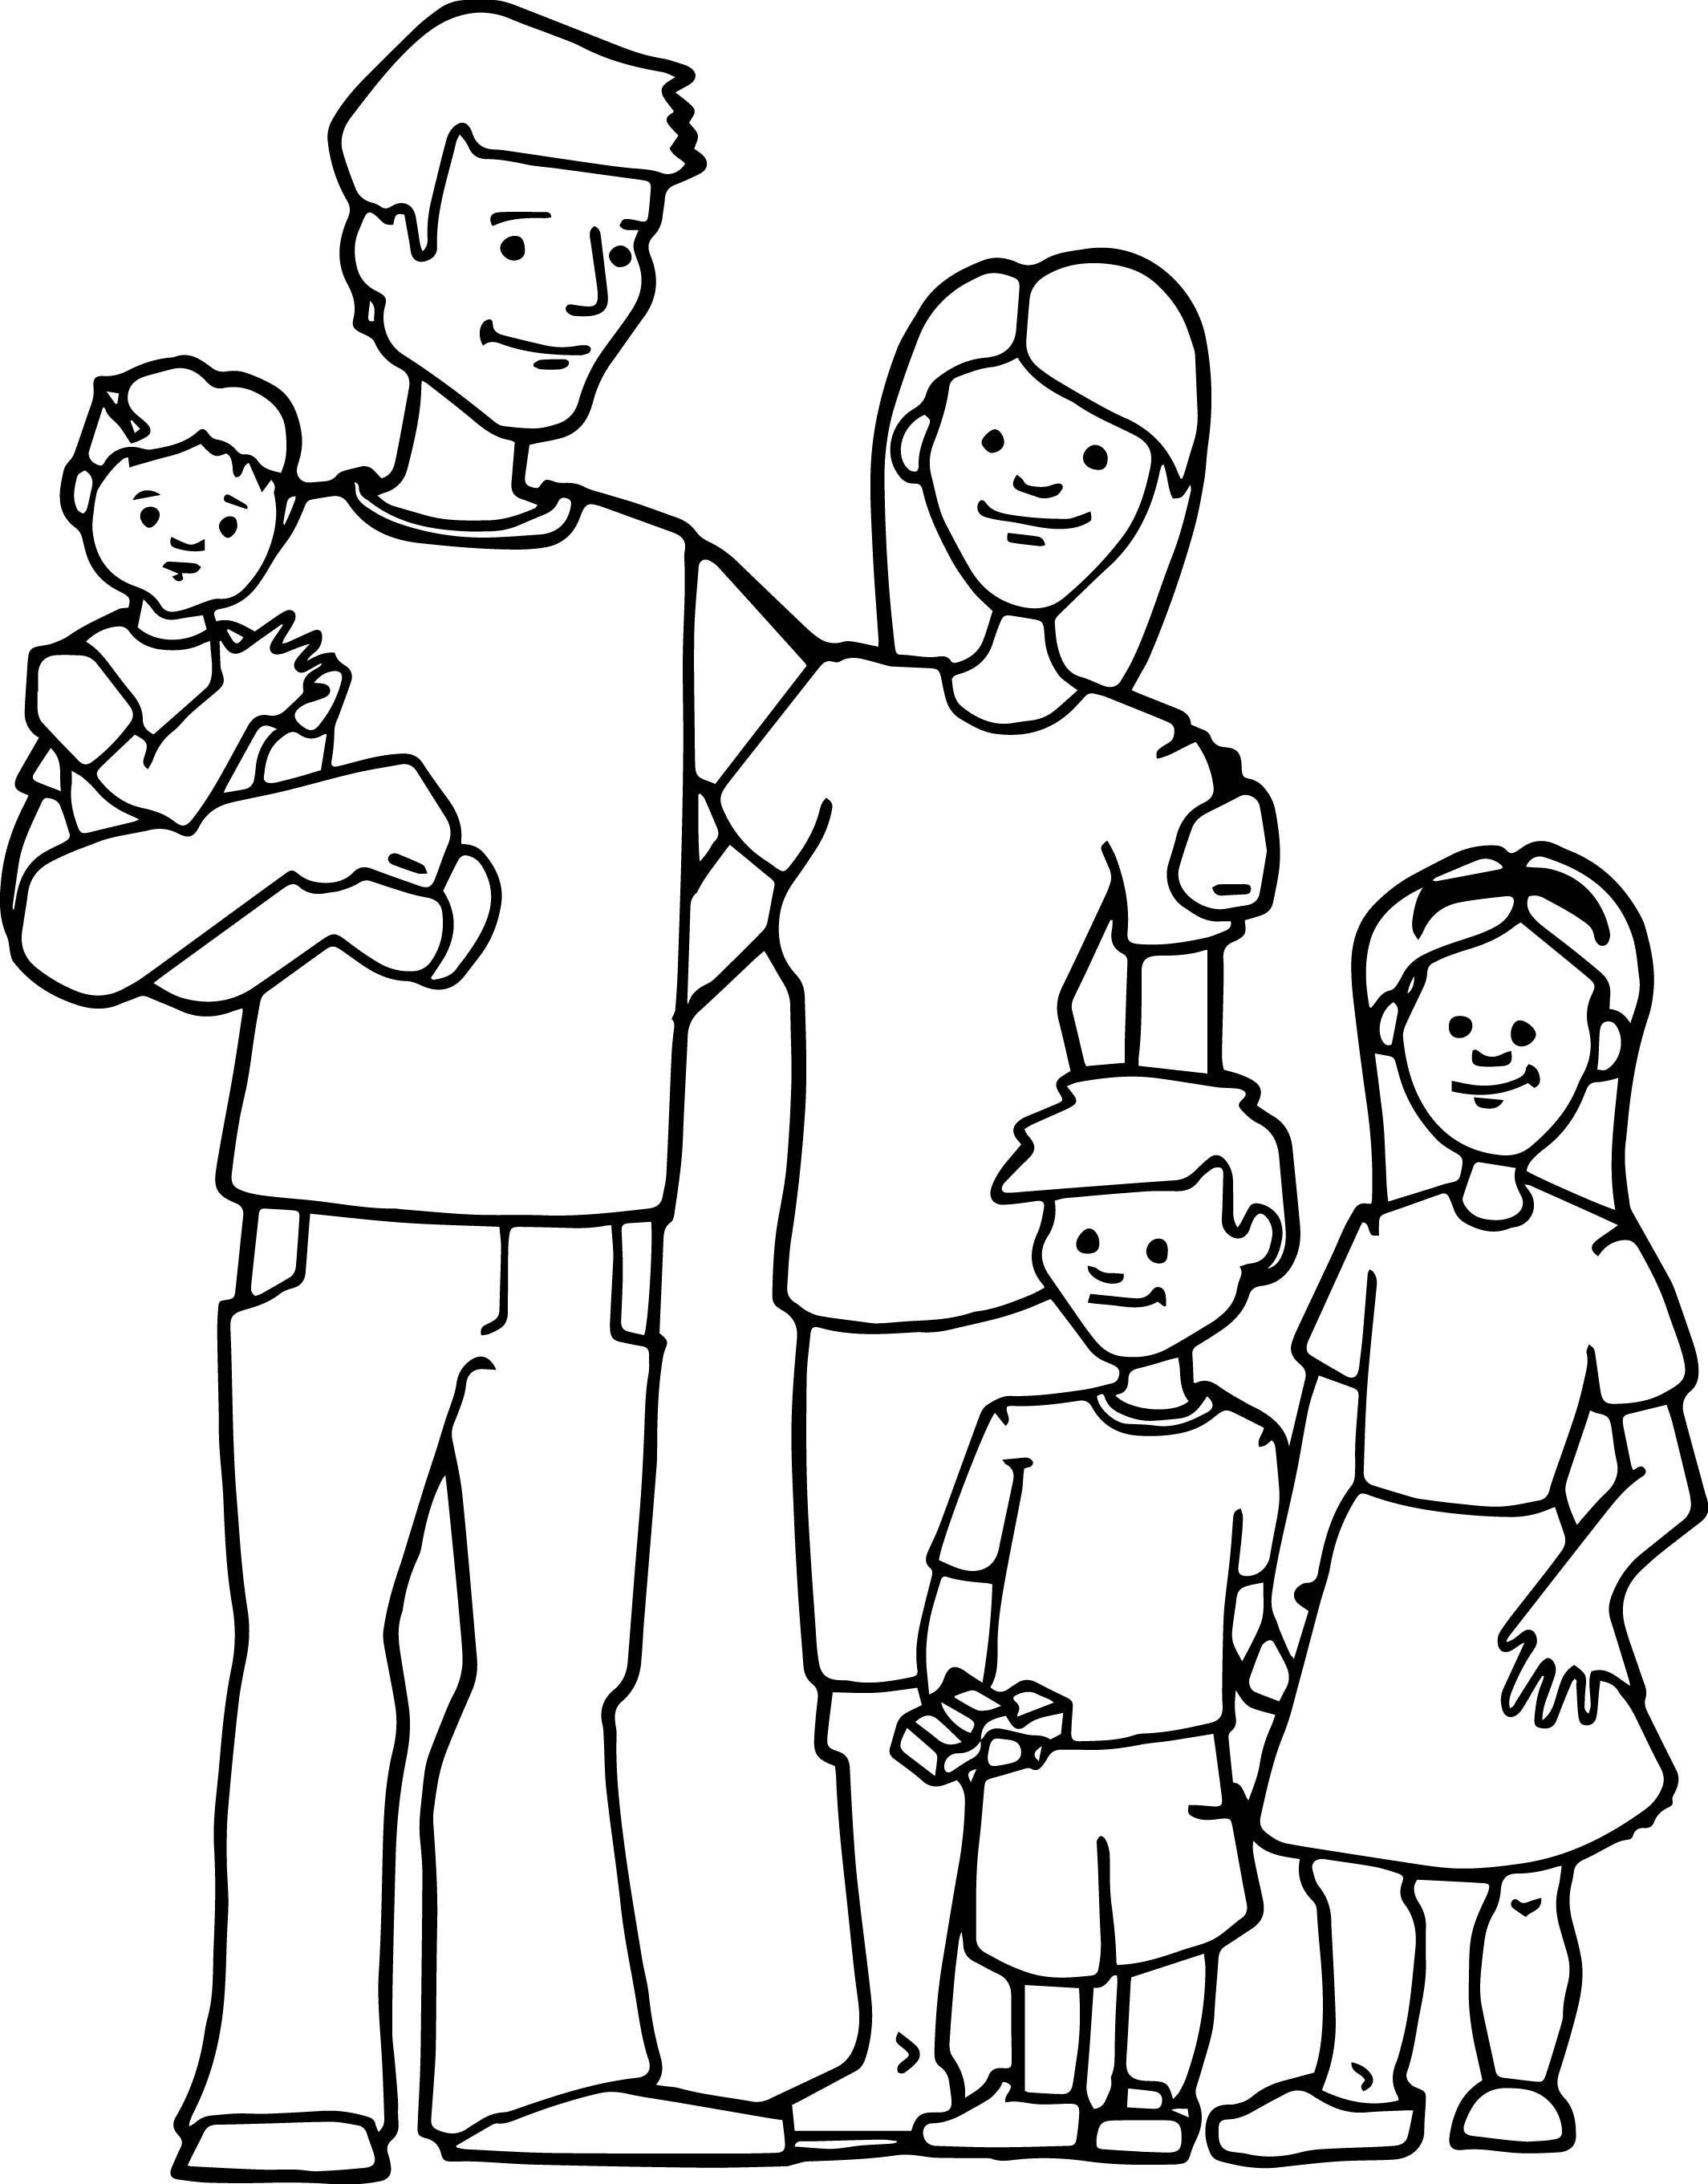 family members coloring worksheets free printable happy family coloring pages for kids family worksheets members coloring